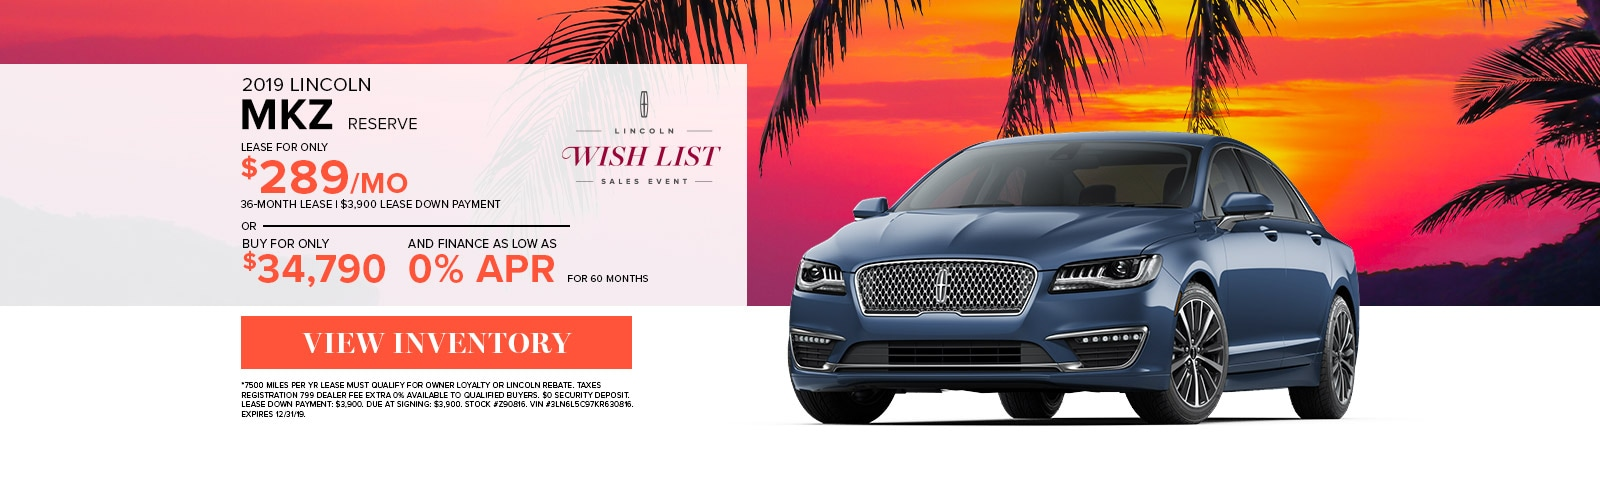 Wallace Lincoln Luxury Cars Lincoln Dealer In Fort Pierce Fl